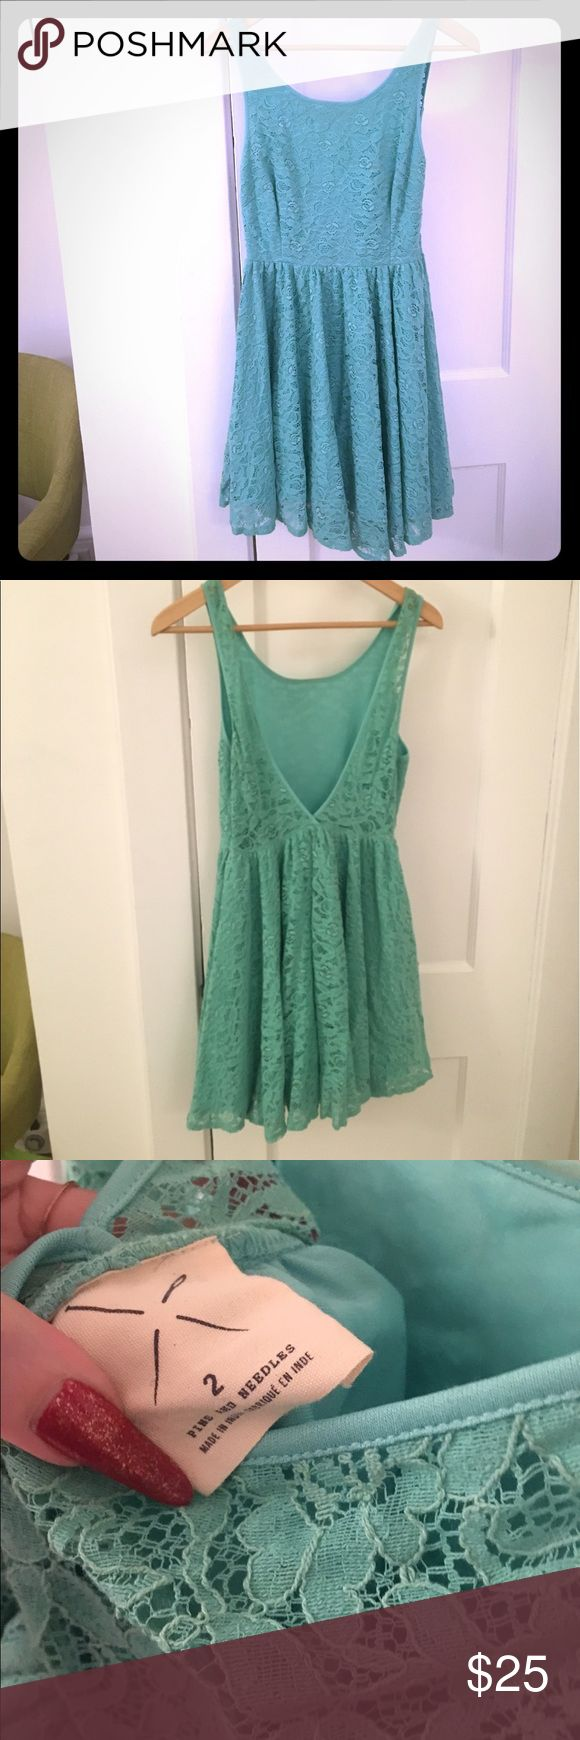 Urban Outfitters turquoise lace dress size 2 Lace swingy dress purchased at Urban Outfitters. Size 2. Open back. Great preowned condition. Pins & Needles Dresses